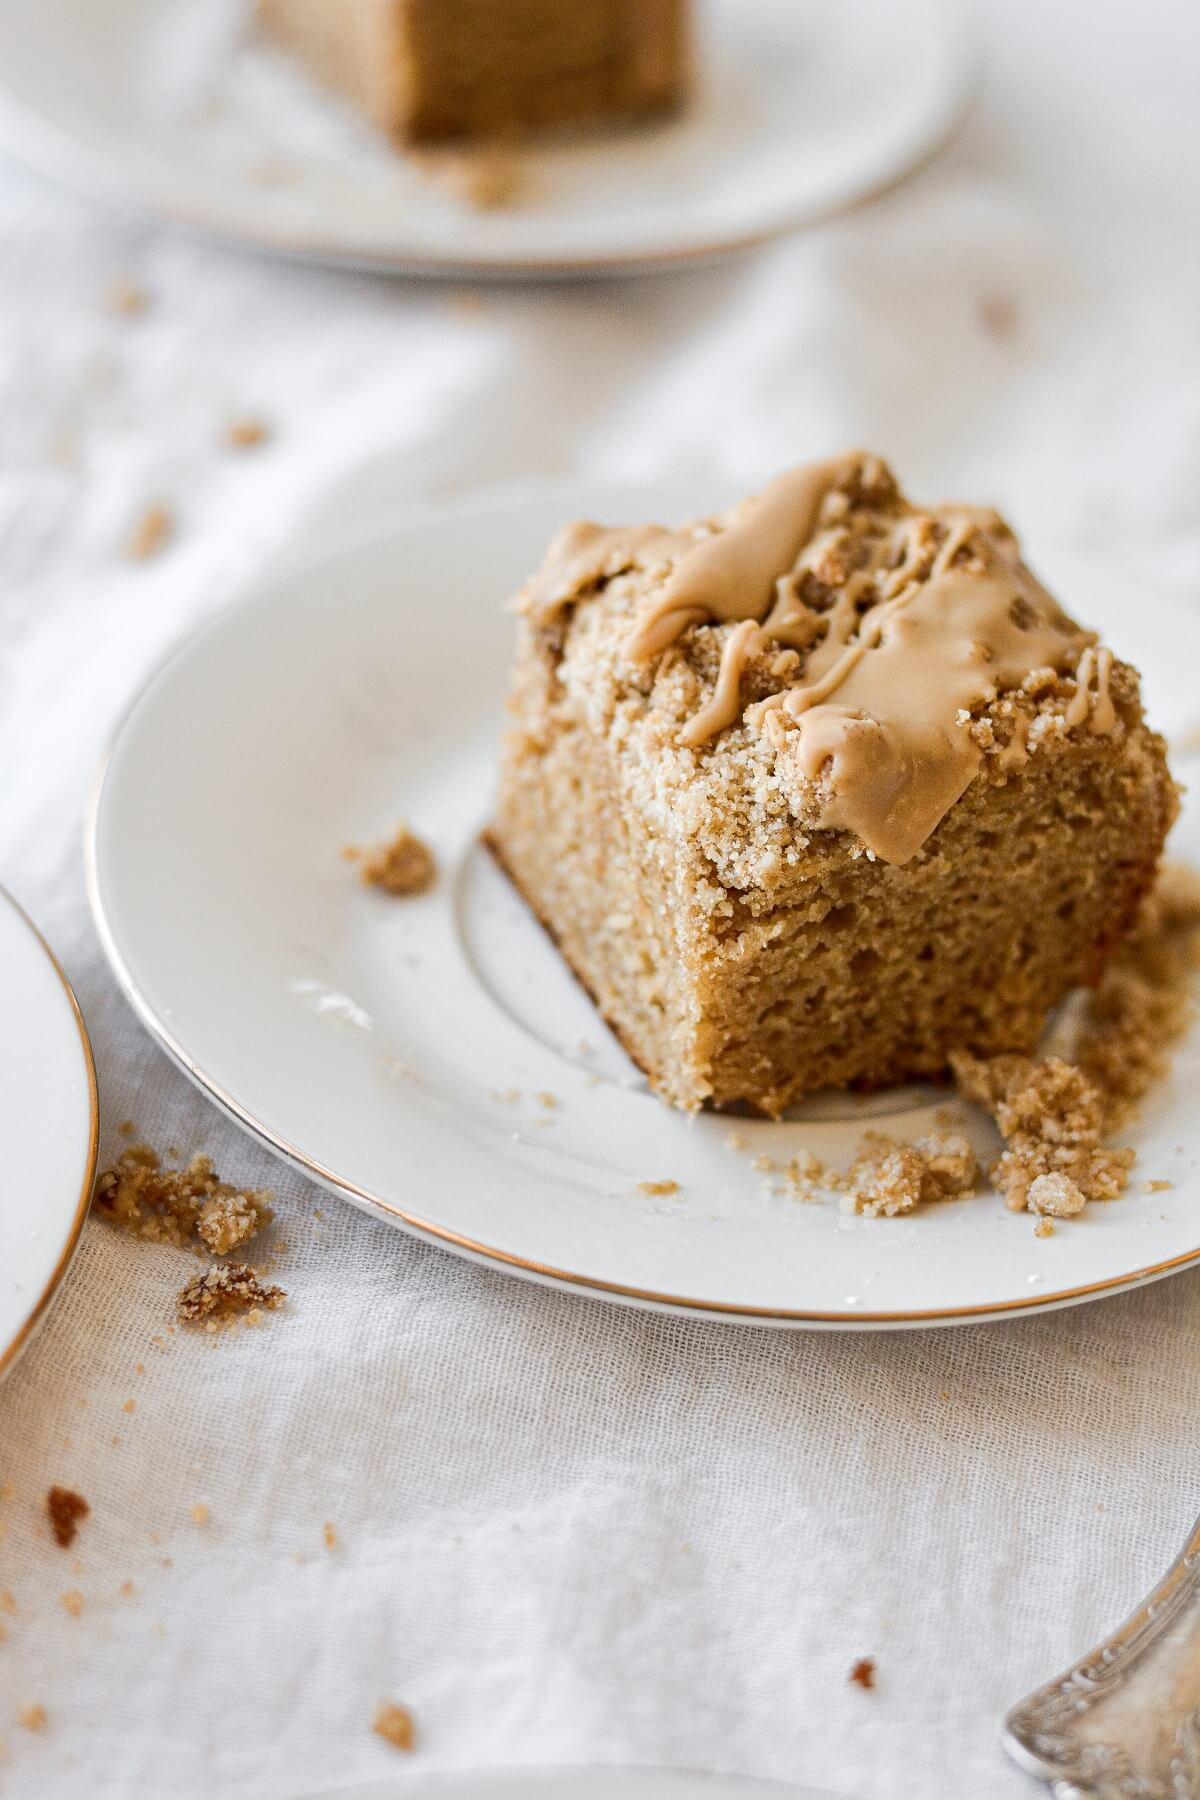 Pieces of gingerbread coffee cake, drizzled with maple icing.